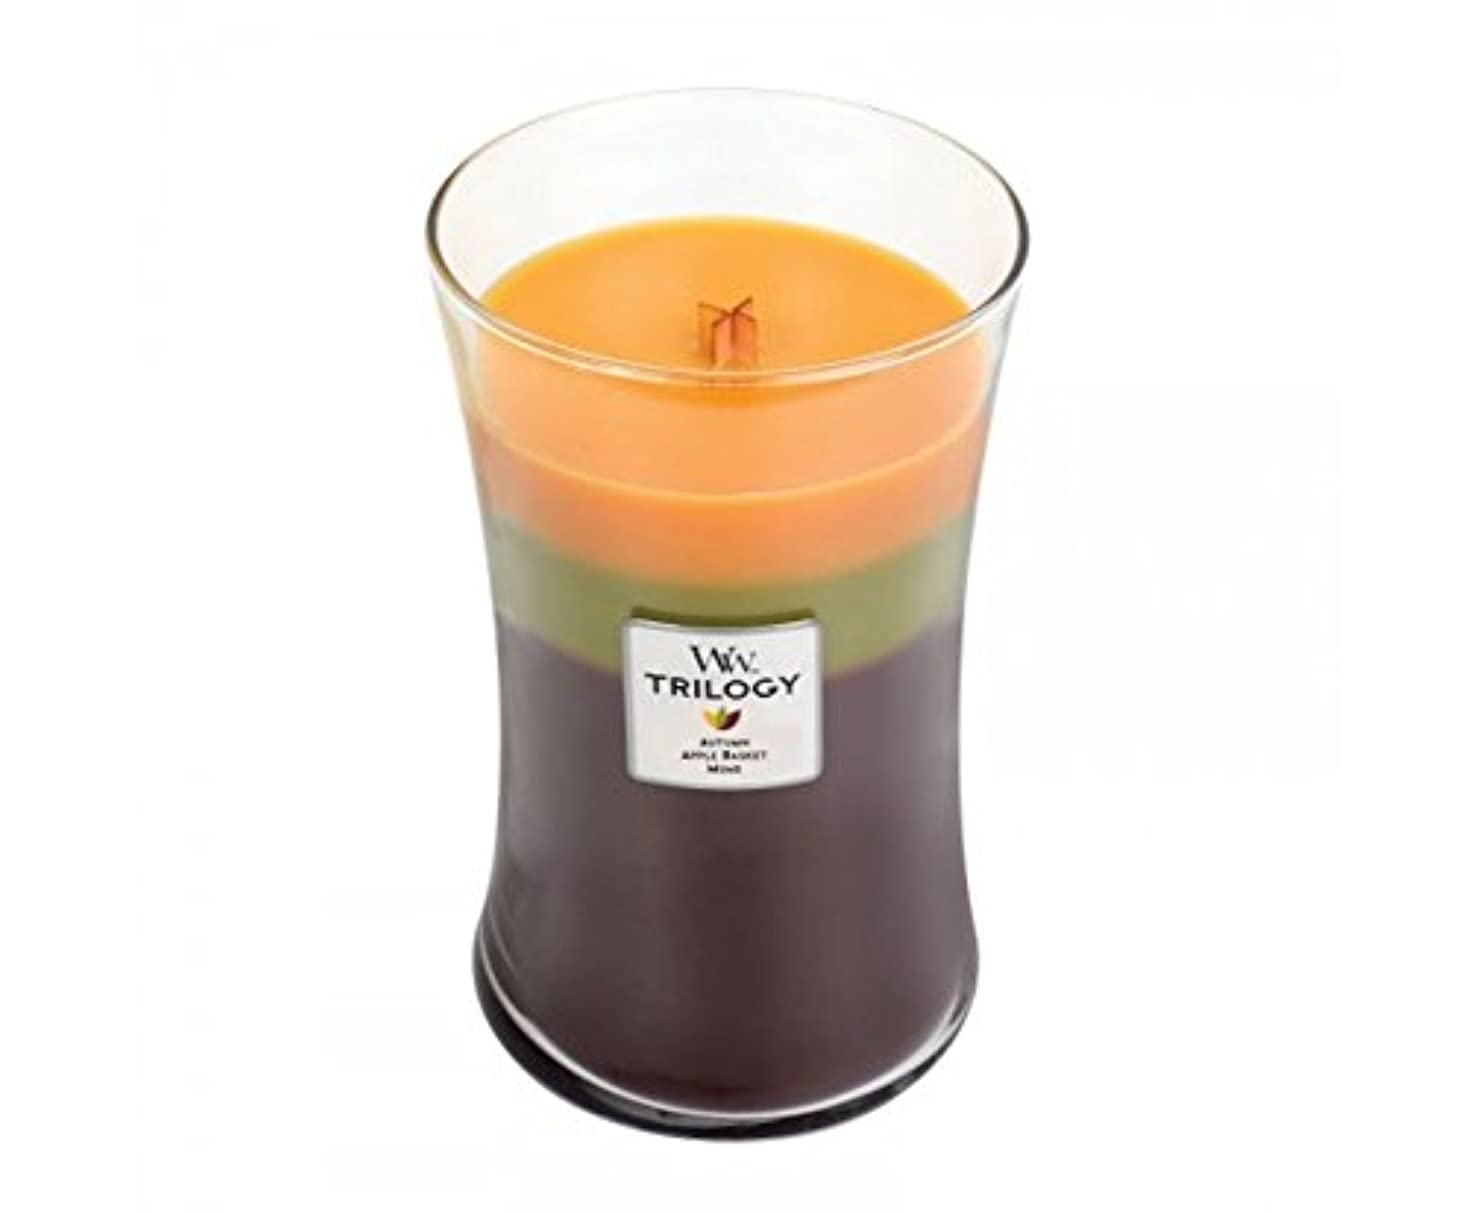 最大限町フェローシップWoodwick Trilogy Autumn 93961 Traditions Large Duftkerze Hourglass Glass Multi-Coloured Yellow/Green/Brown, 10.4...